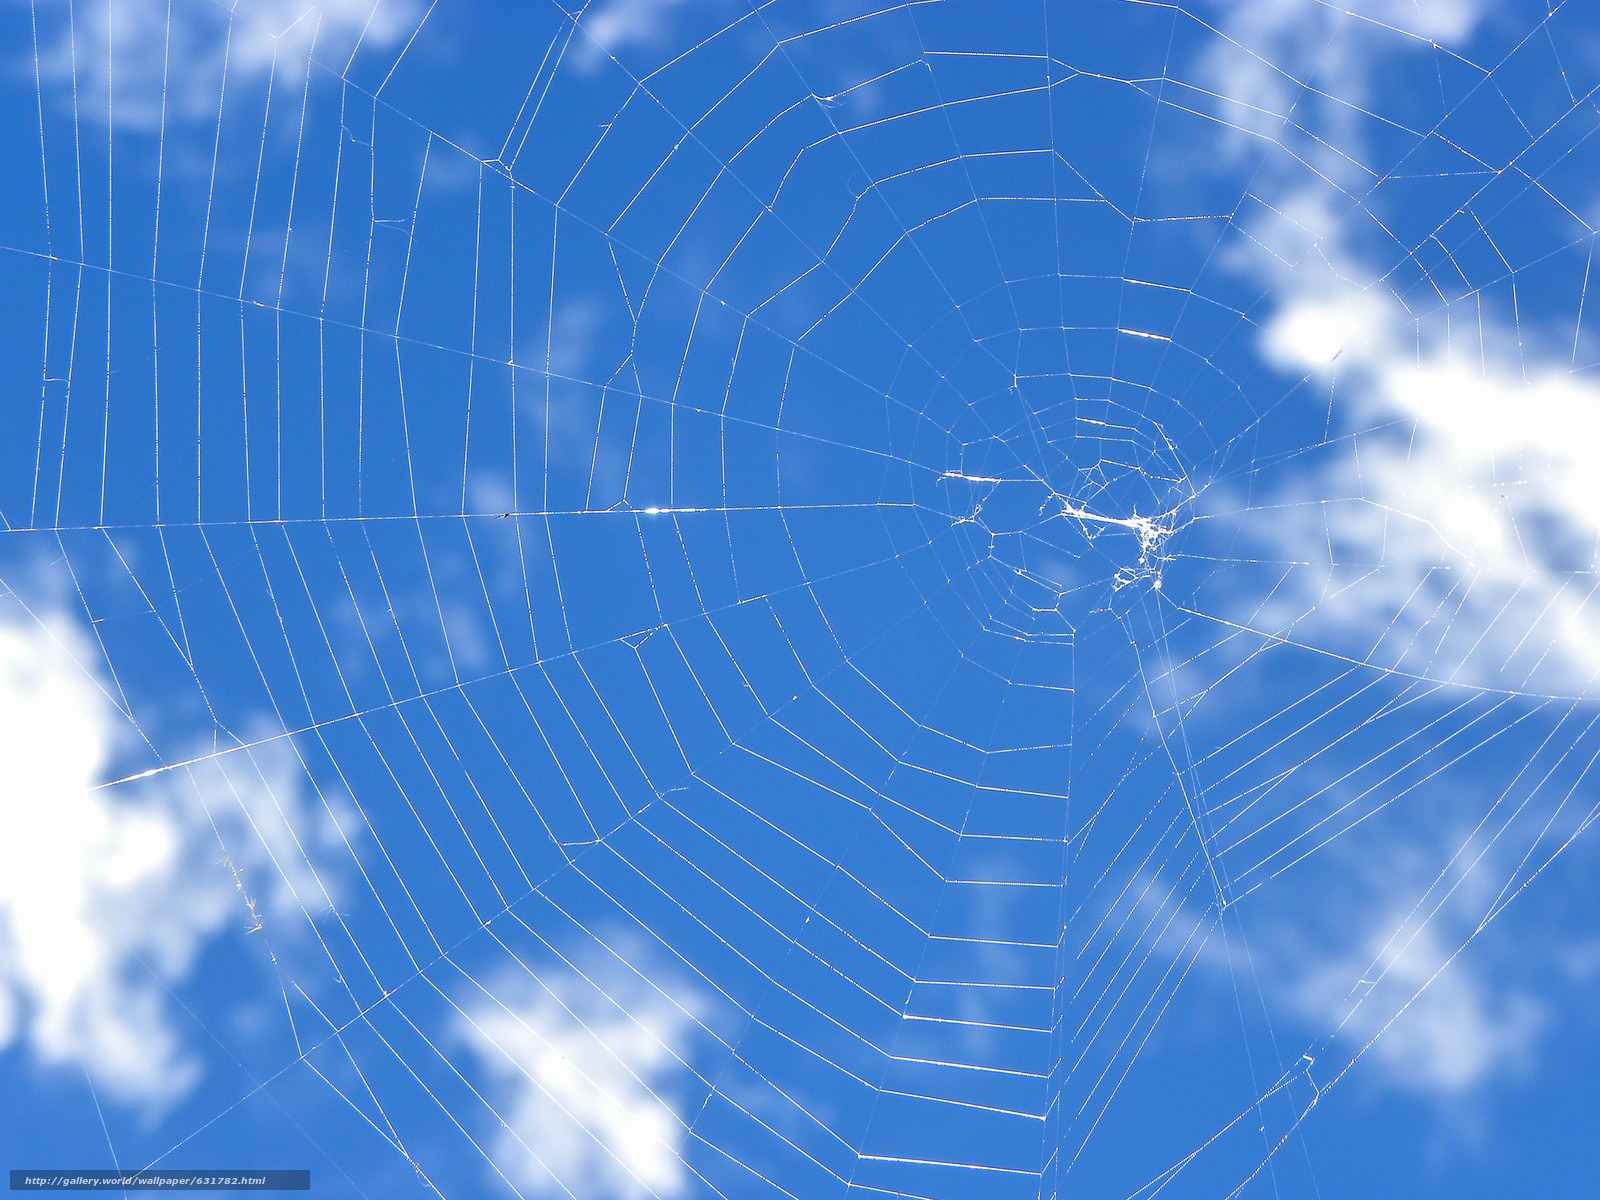 Download wallpaper sky web macro free desktop wallpaper in the resolution 4000x3000 picture - Wallpaper 3000 x 4000 ...